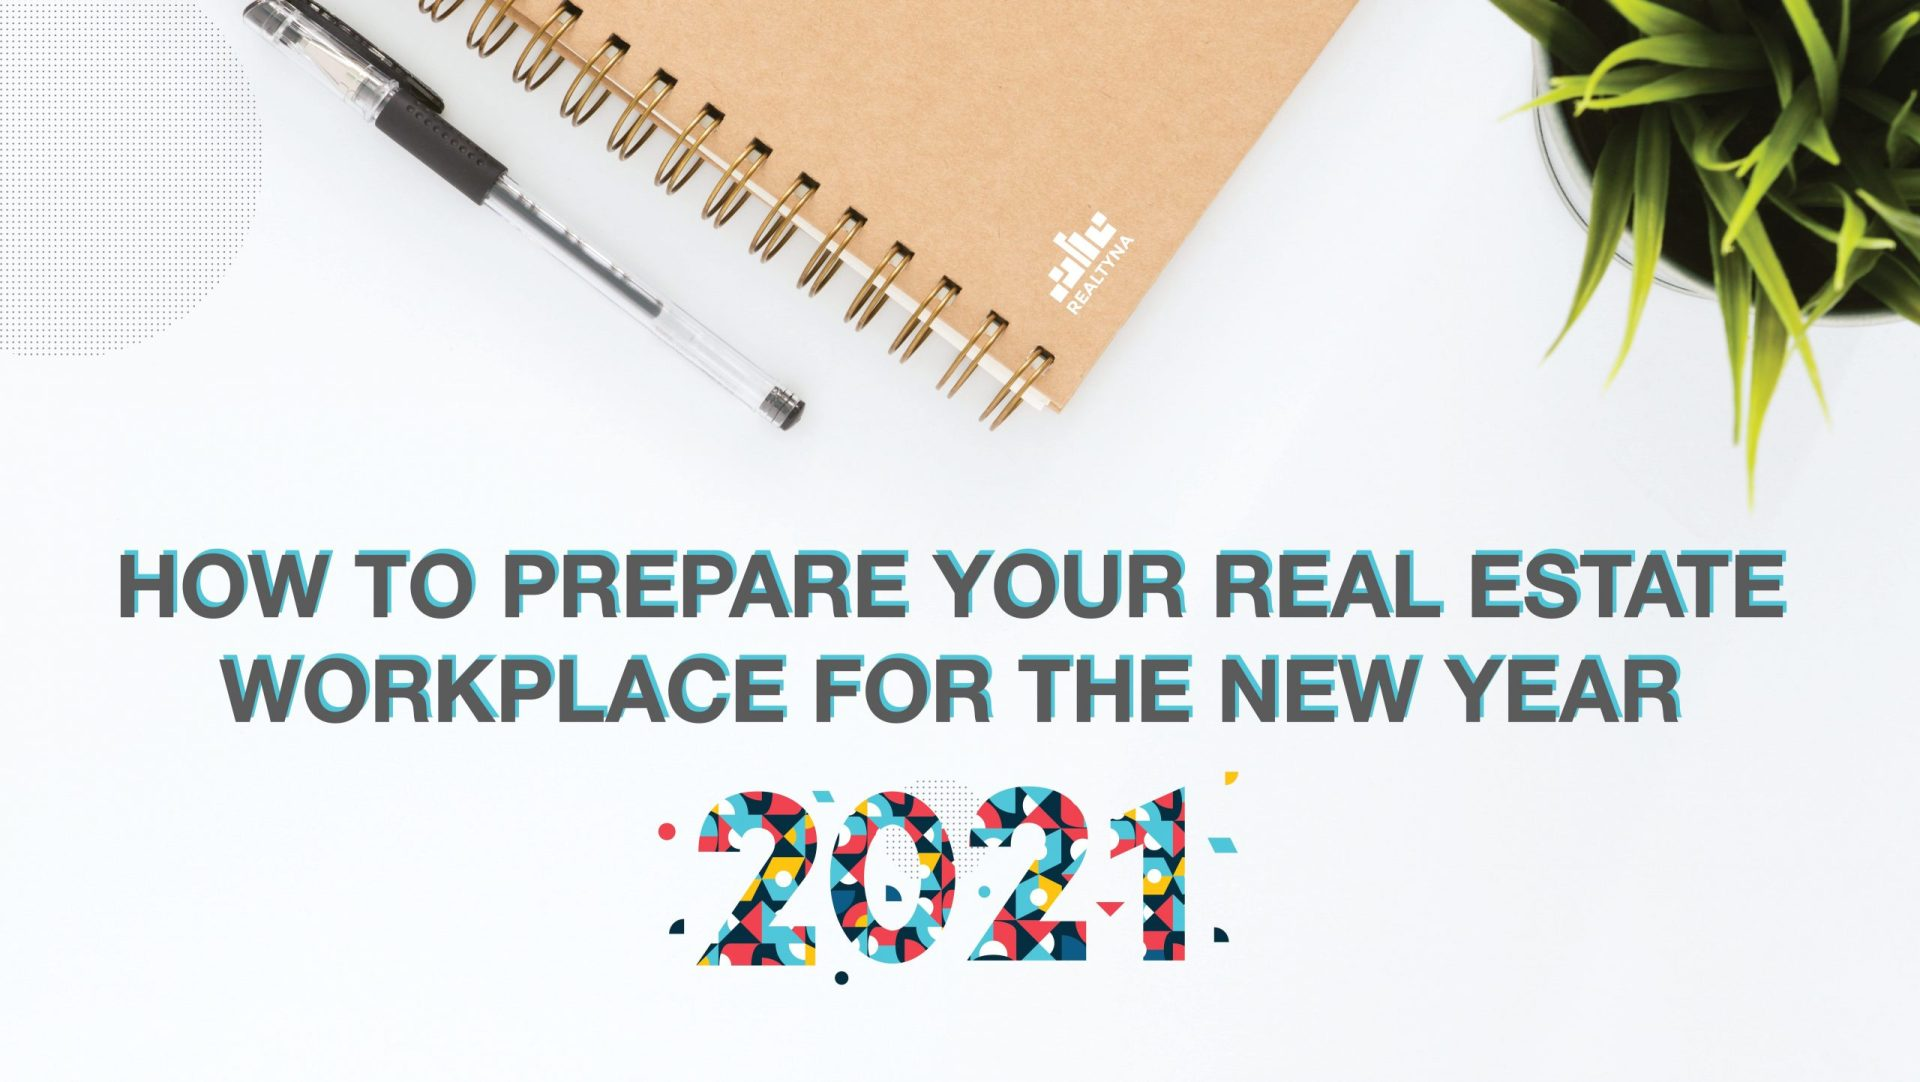 How to Prepare Your Real Estate Workplace for the New Year 2021